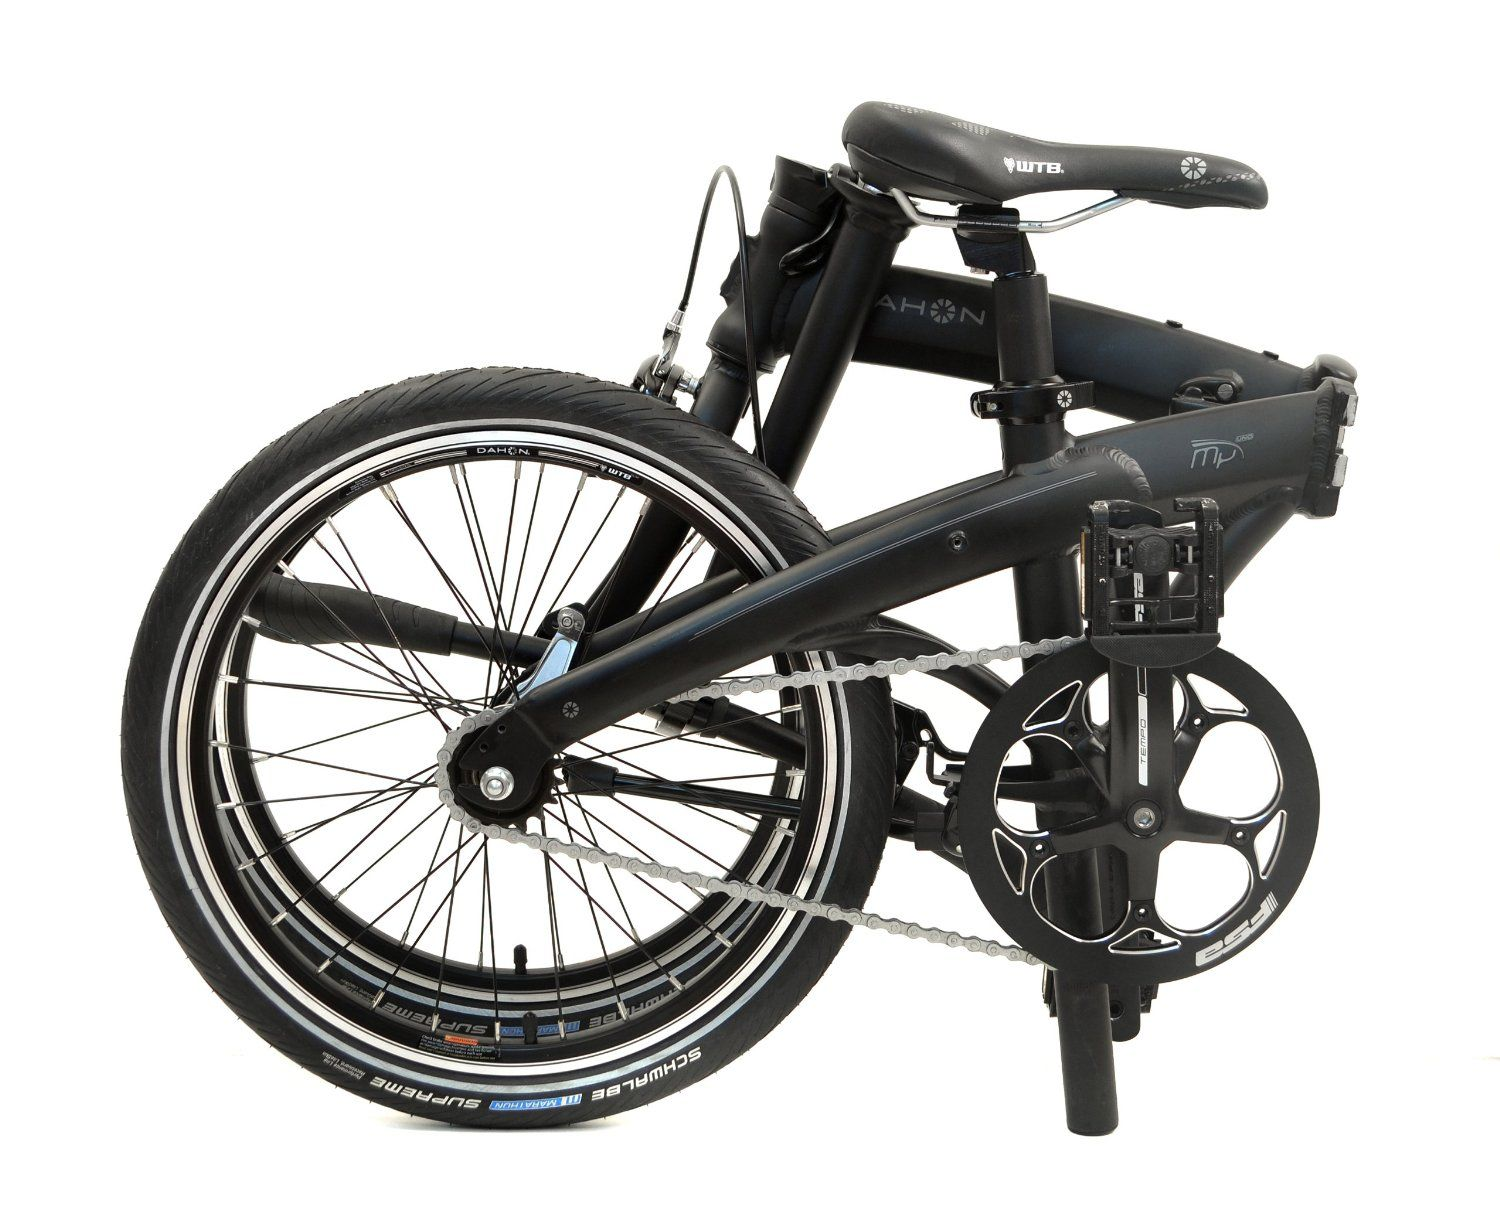 Dahon Vigor P9 Folding Bike Review Almost Uncompromised Riding